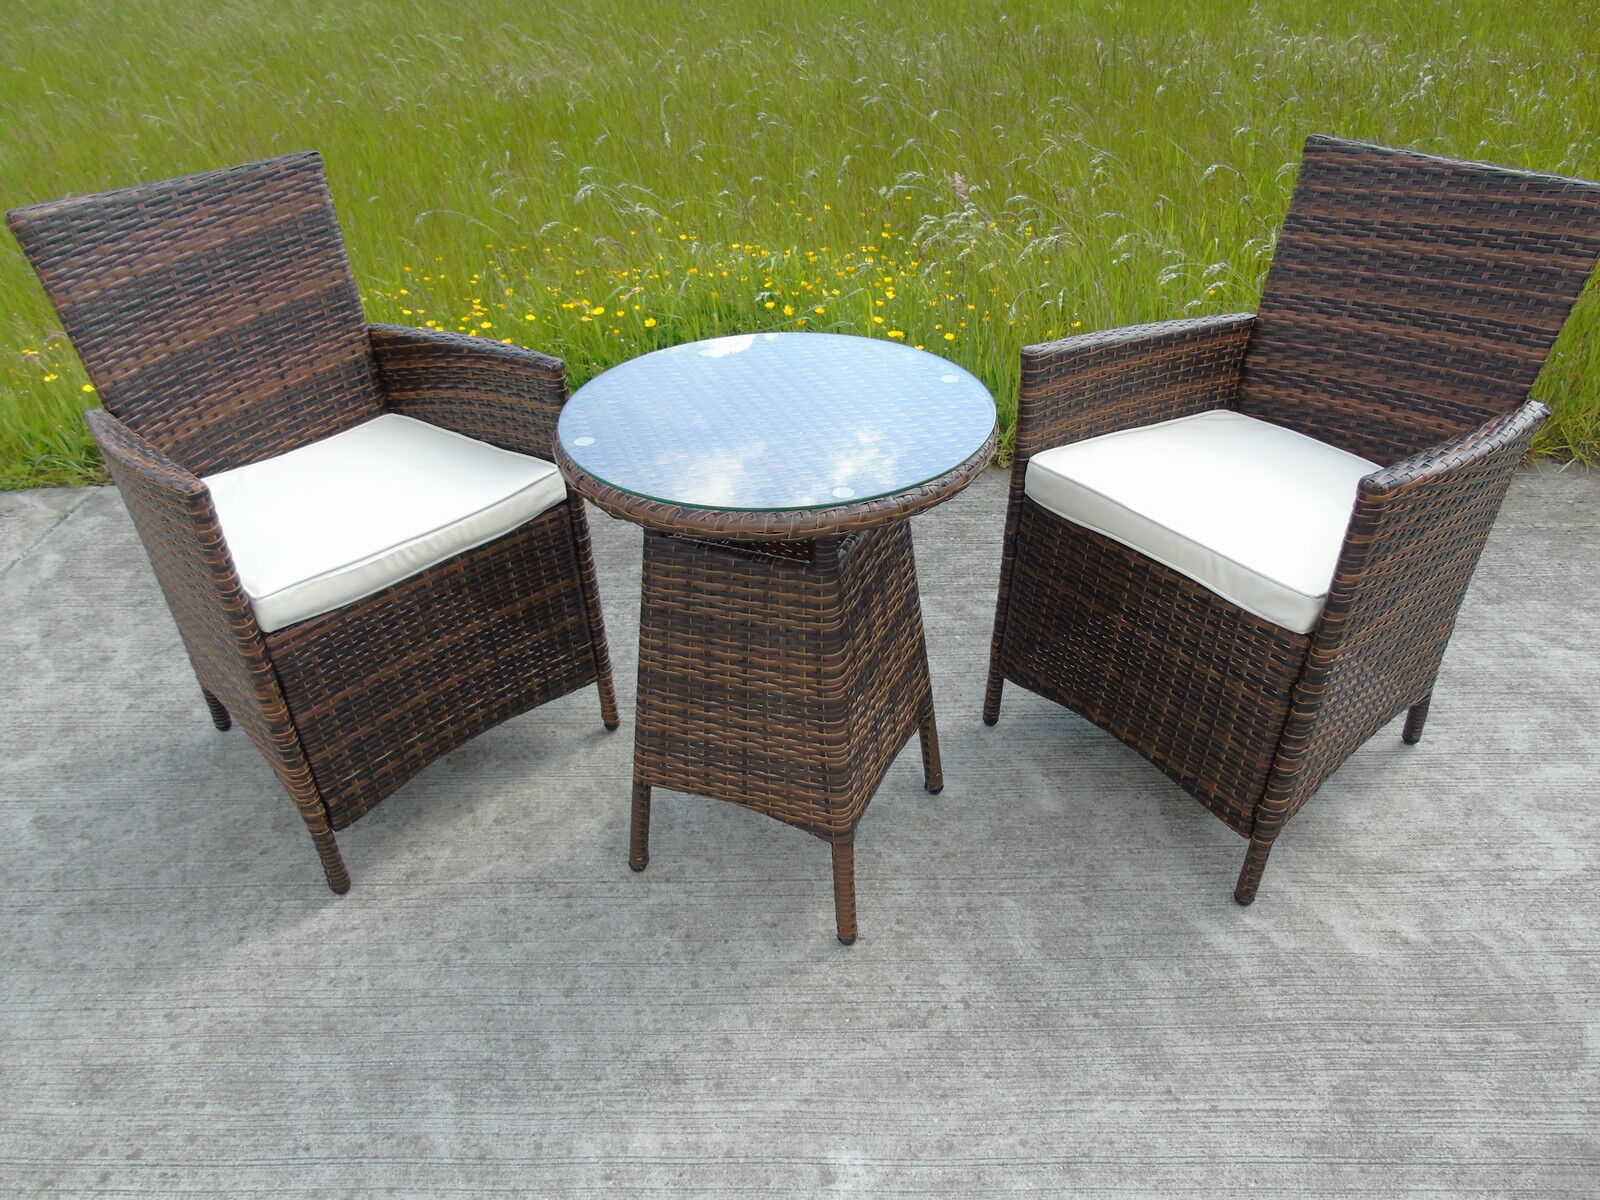 Bistro garden rattan wicker outdoor dining furniture set for Bamboo patio furniture